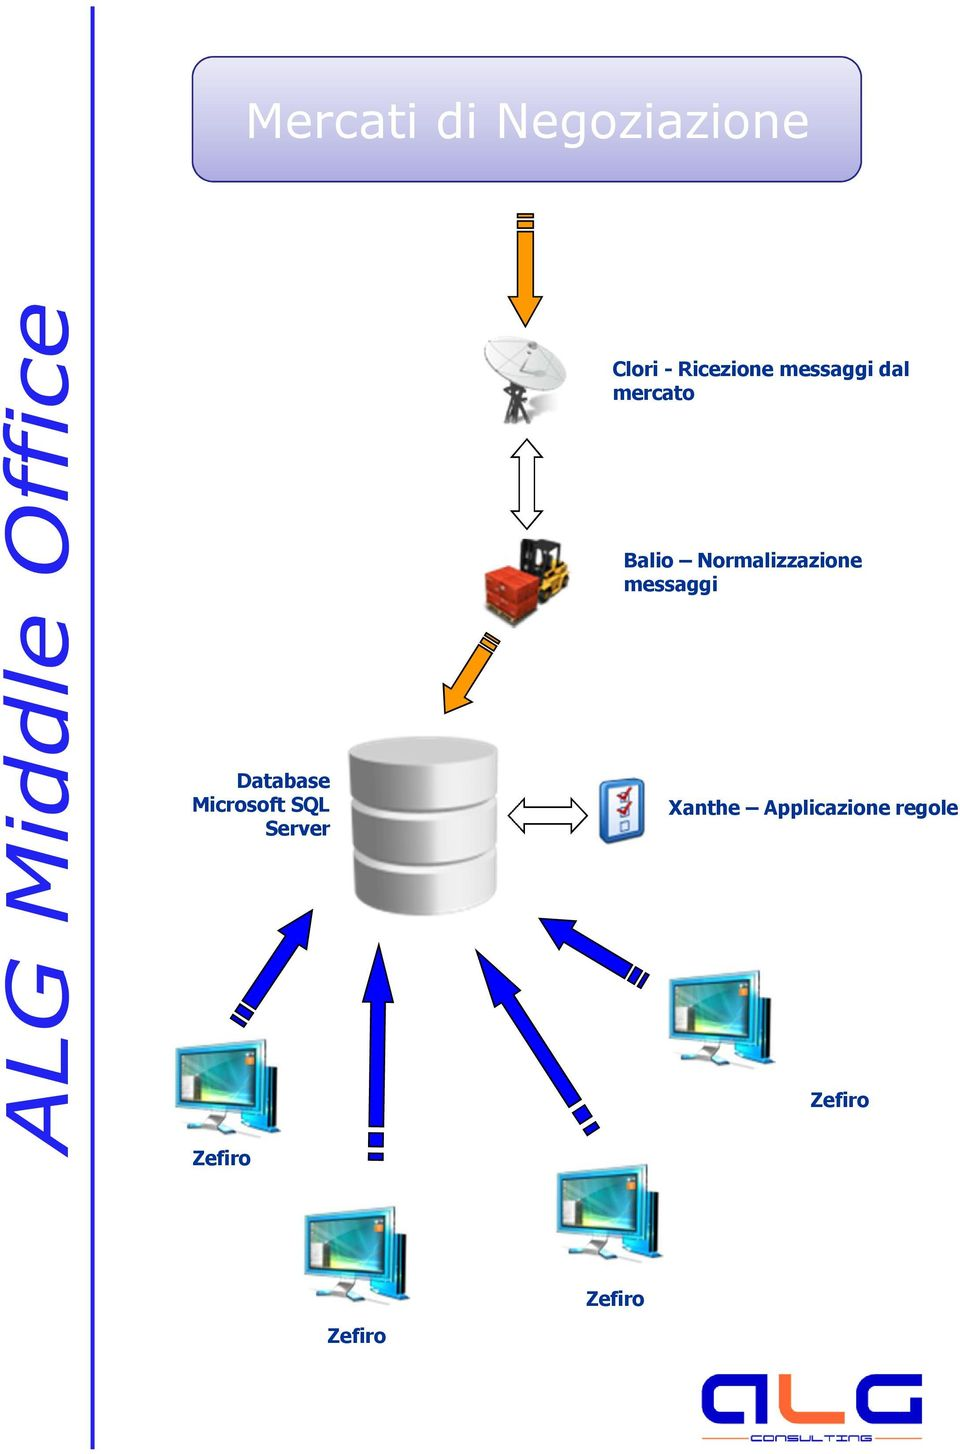 Microsoft SQL Server Database Microsoft SQL Server